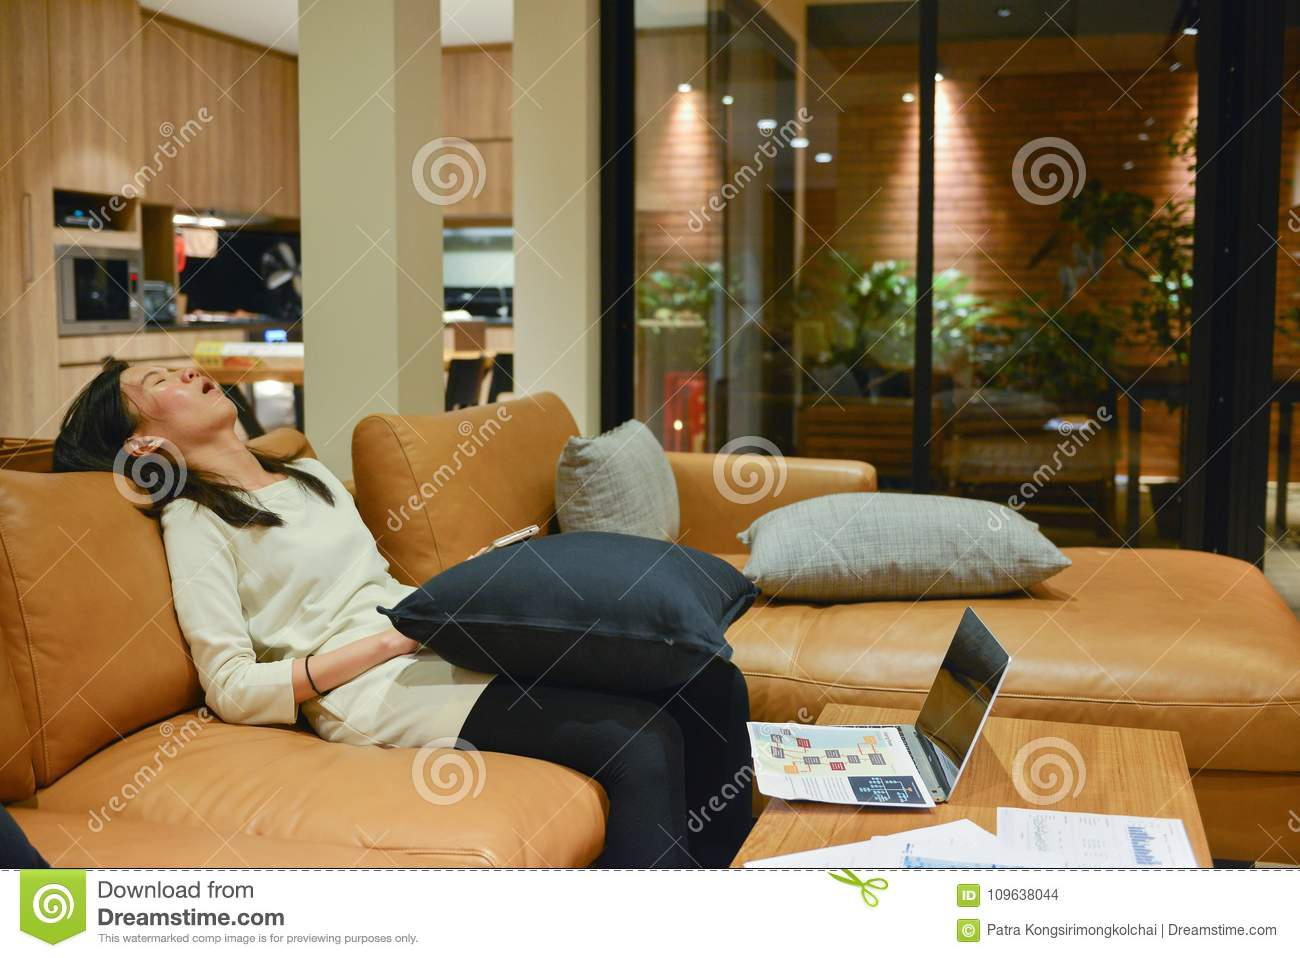 Business Woman Sleeping On Sofa In Living Room At Night.